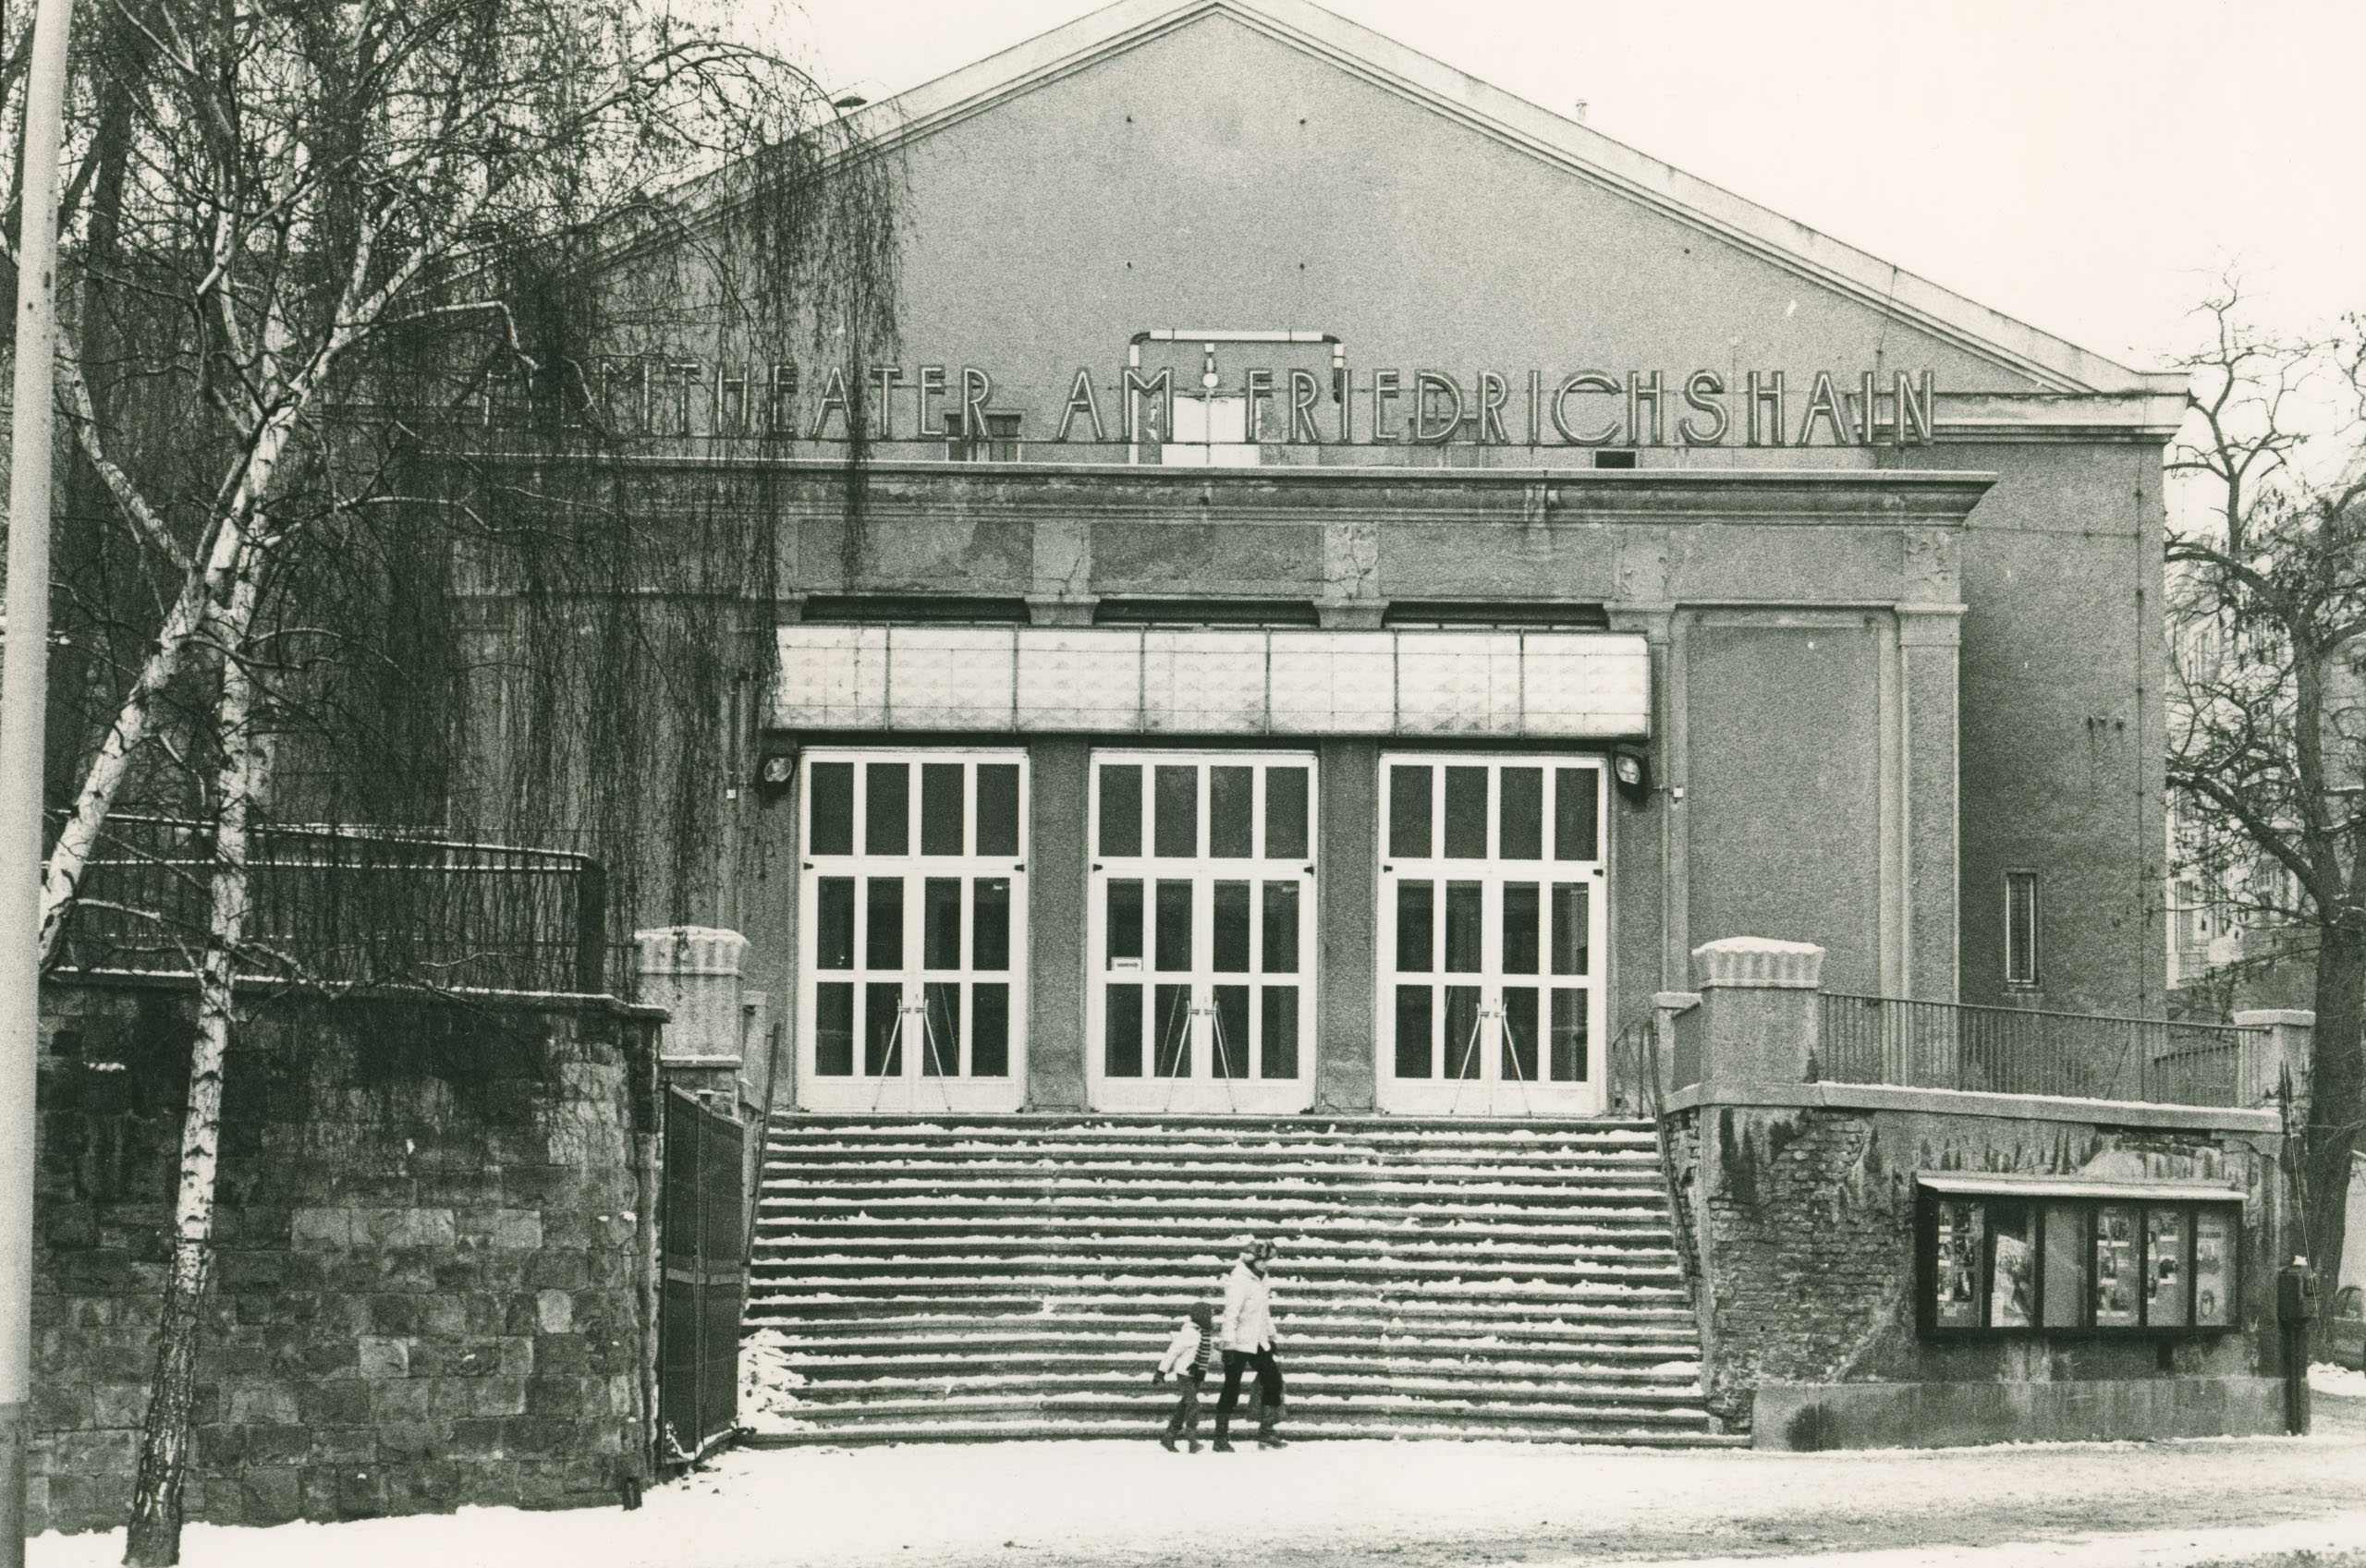 Black and white photo: cinema façade with passersby in winter